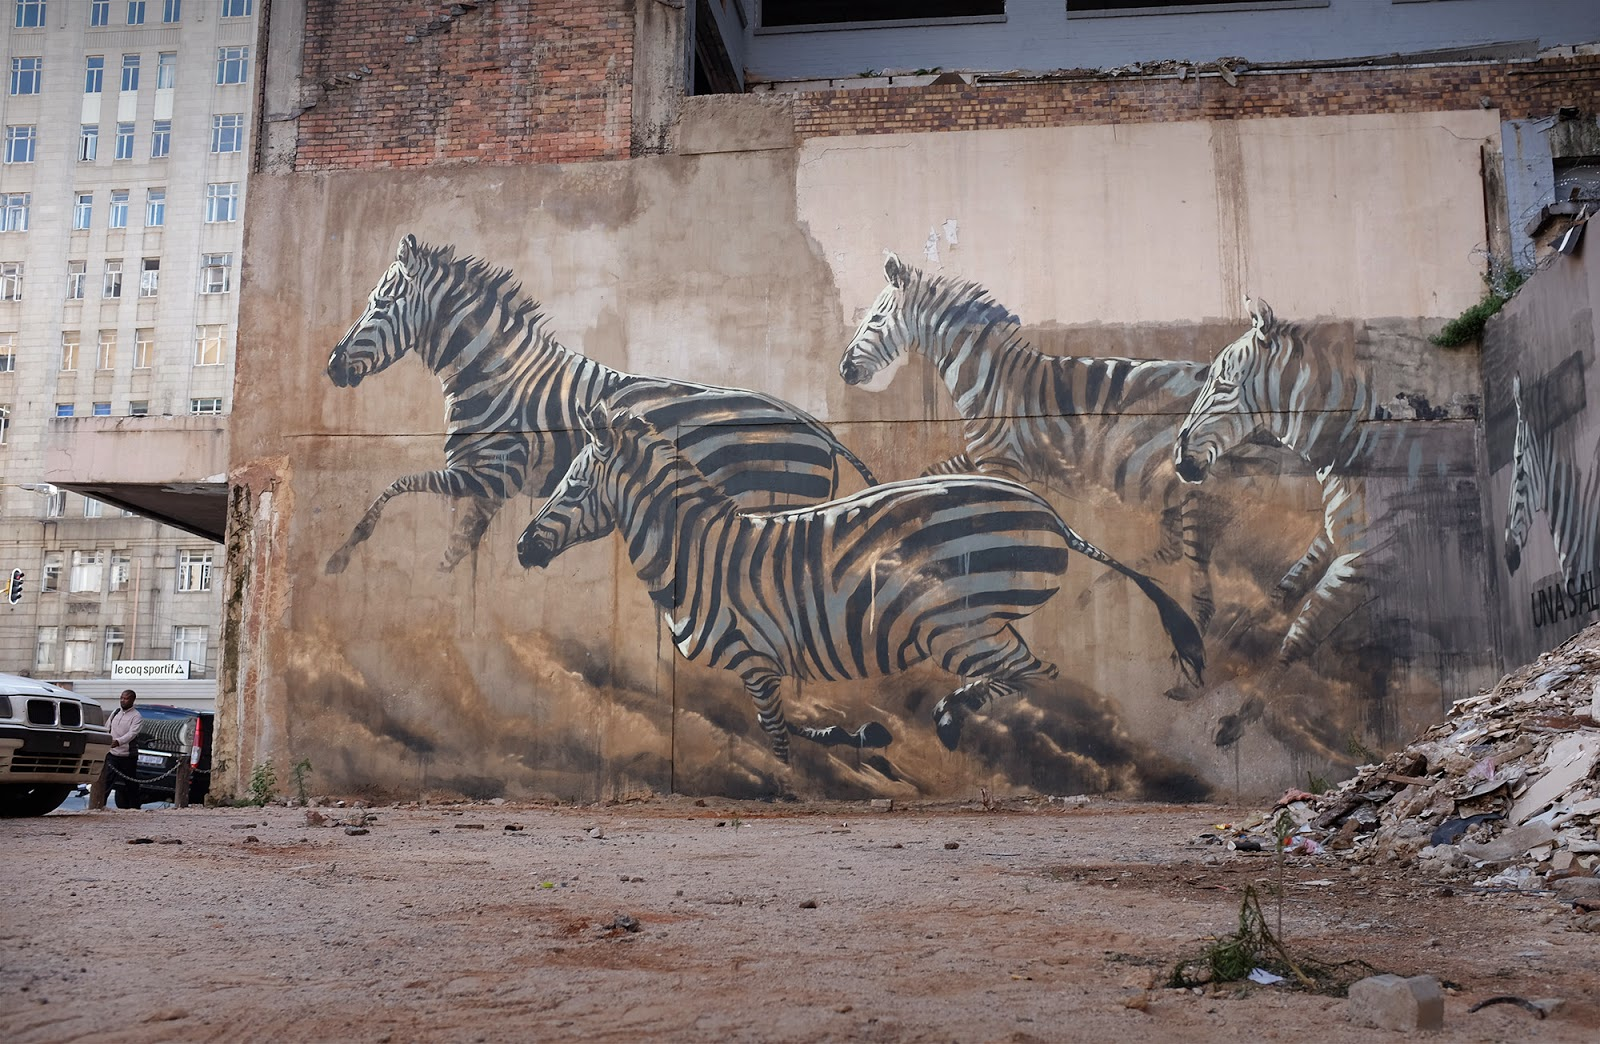 faith47 - jhb2015 - LR1-street-art-10-photos